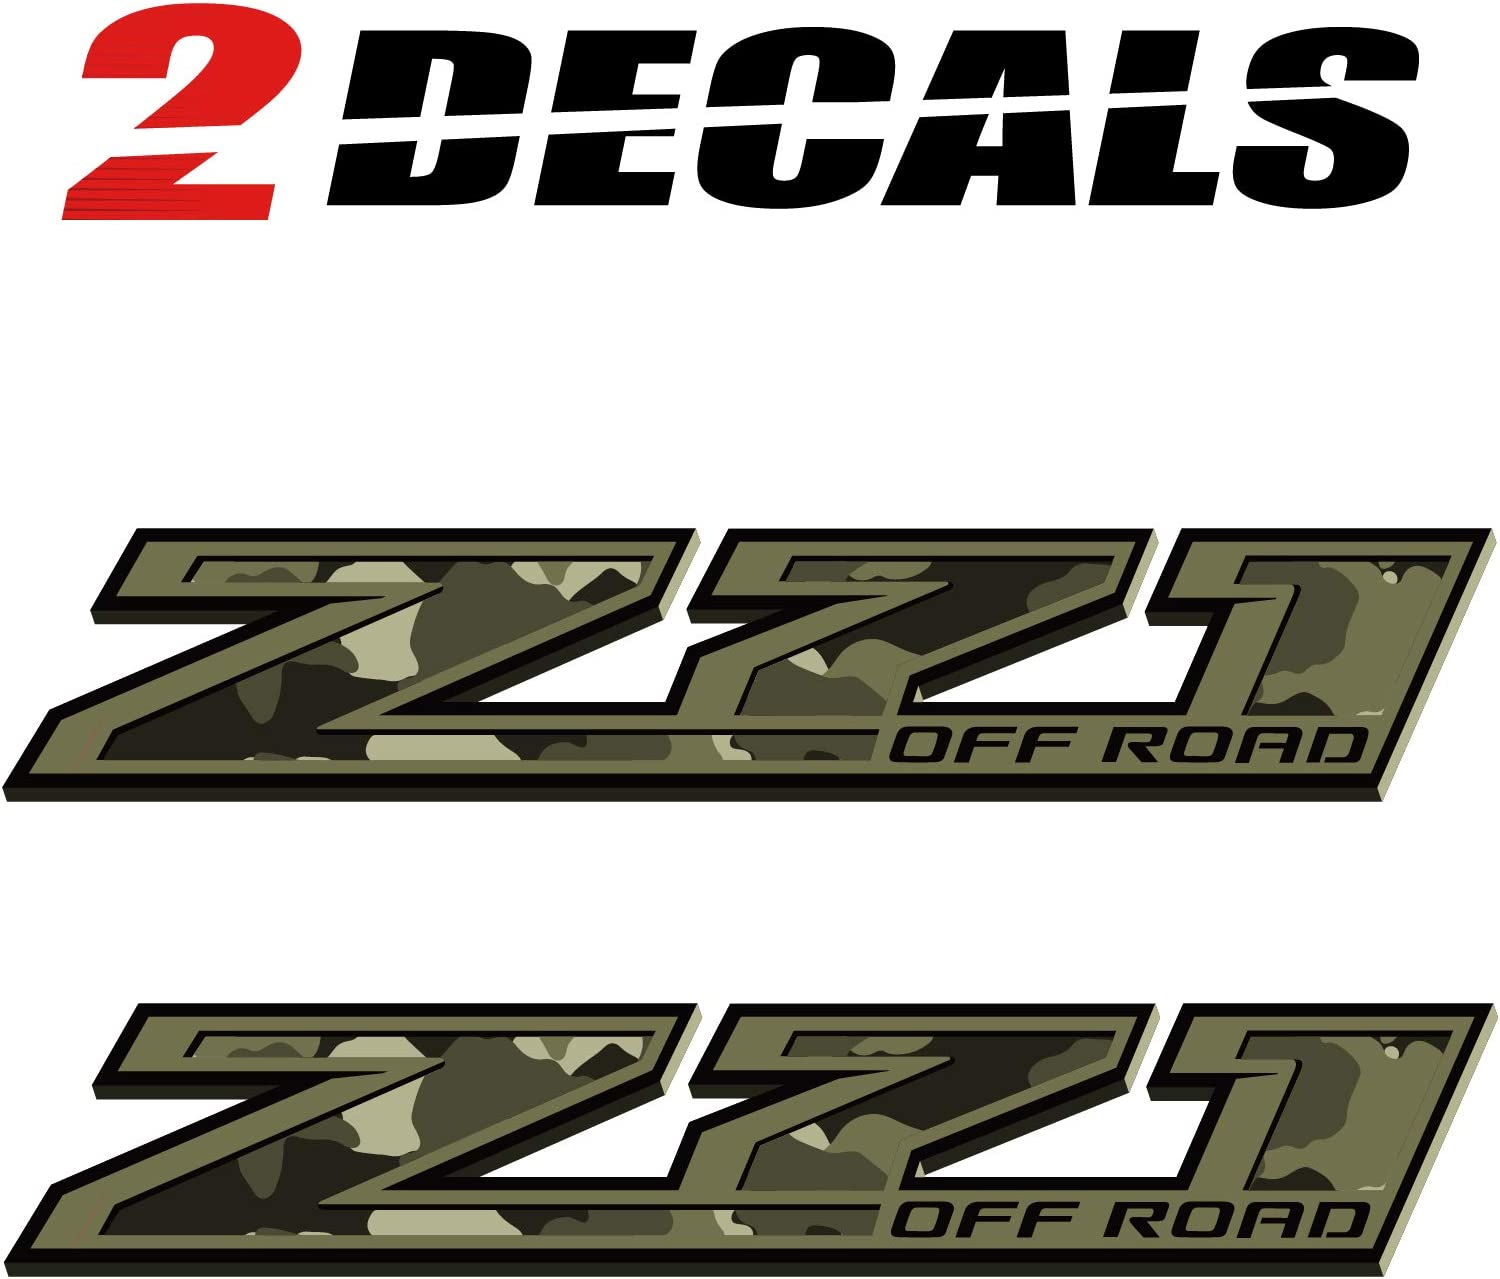 Set of 2 TiresFX Chevy Silverado Camo Z71 Offroad Military Truck Stickers Decals Bedside